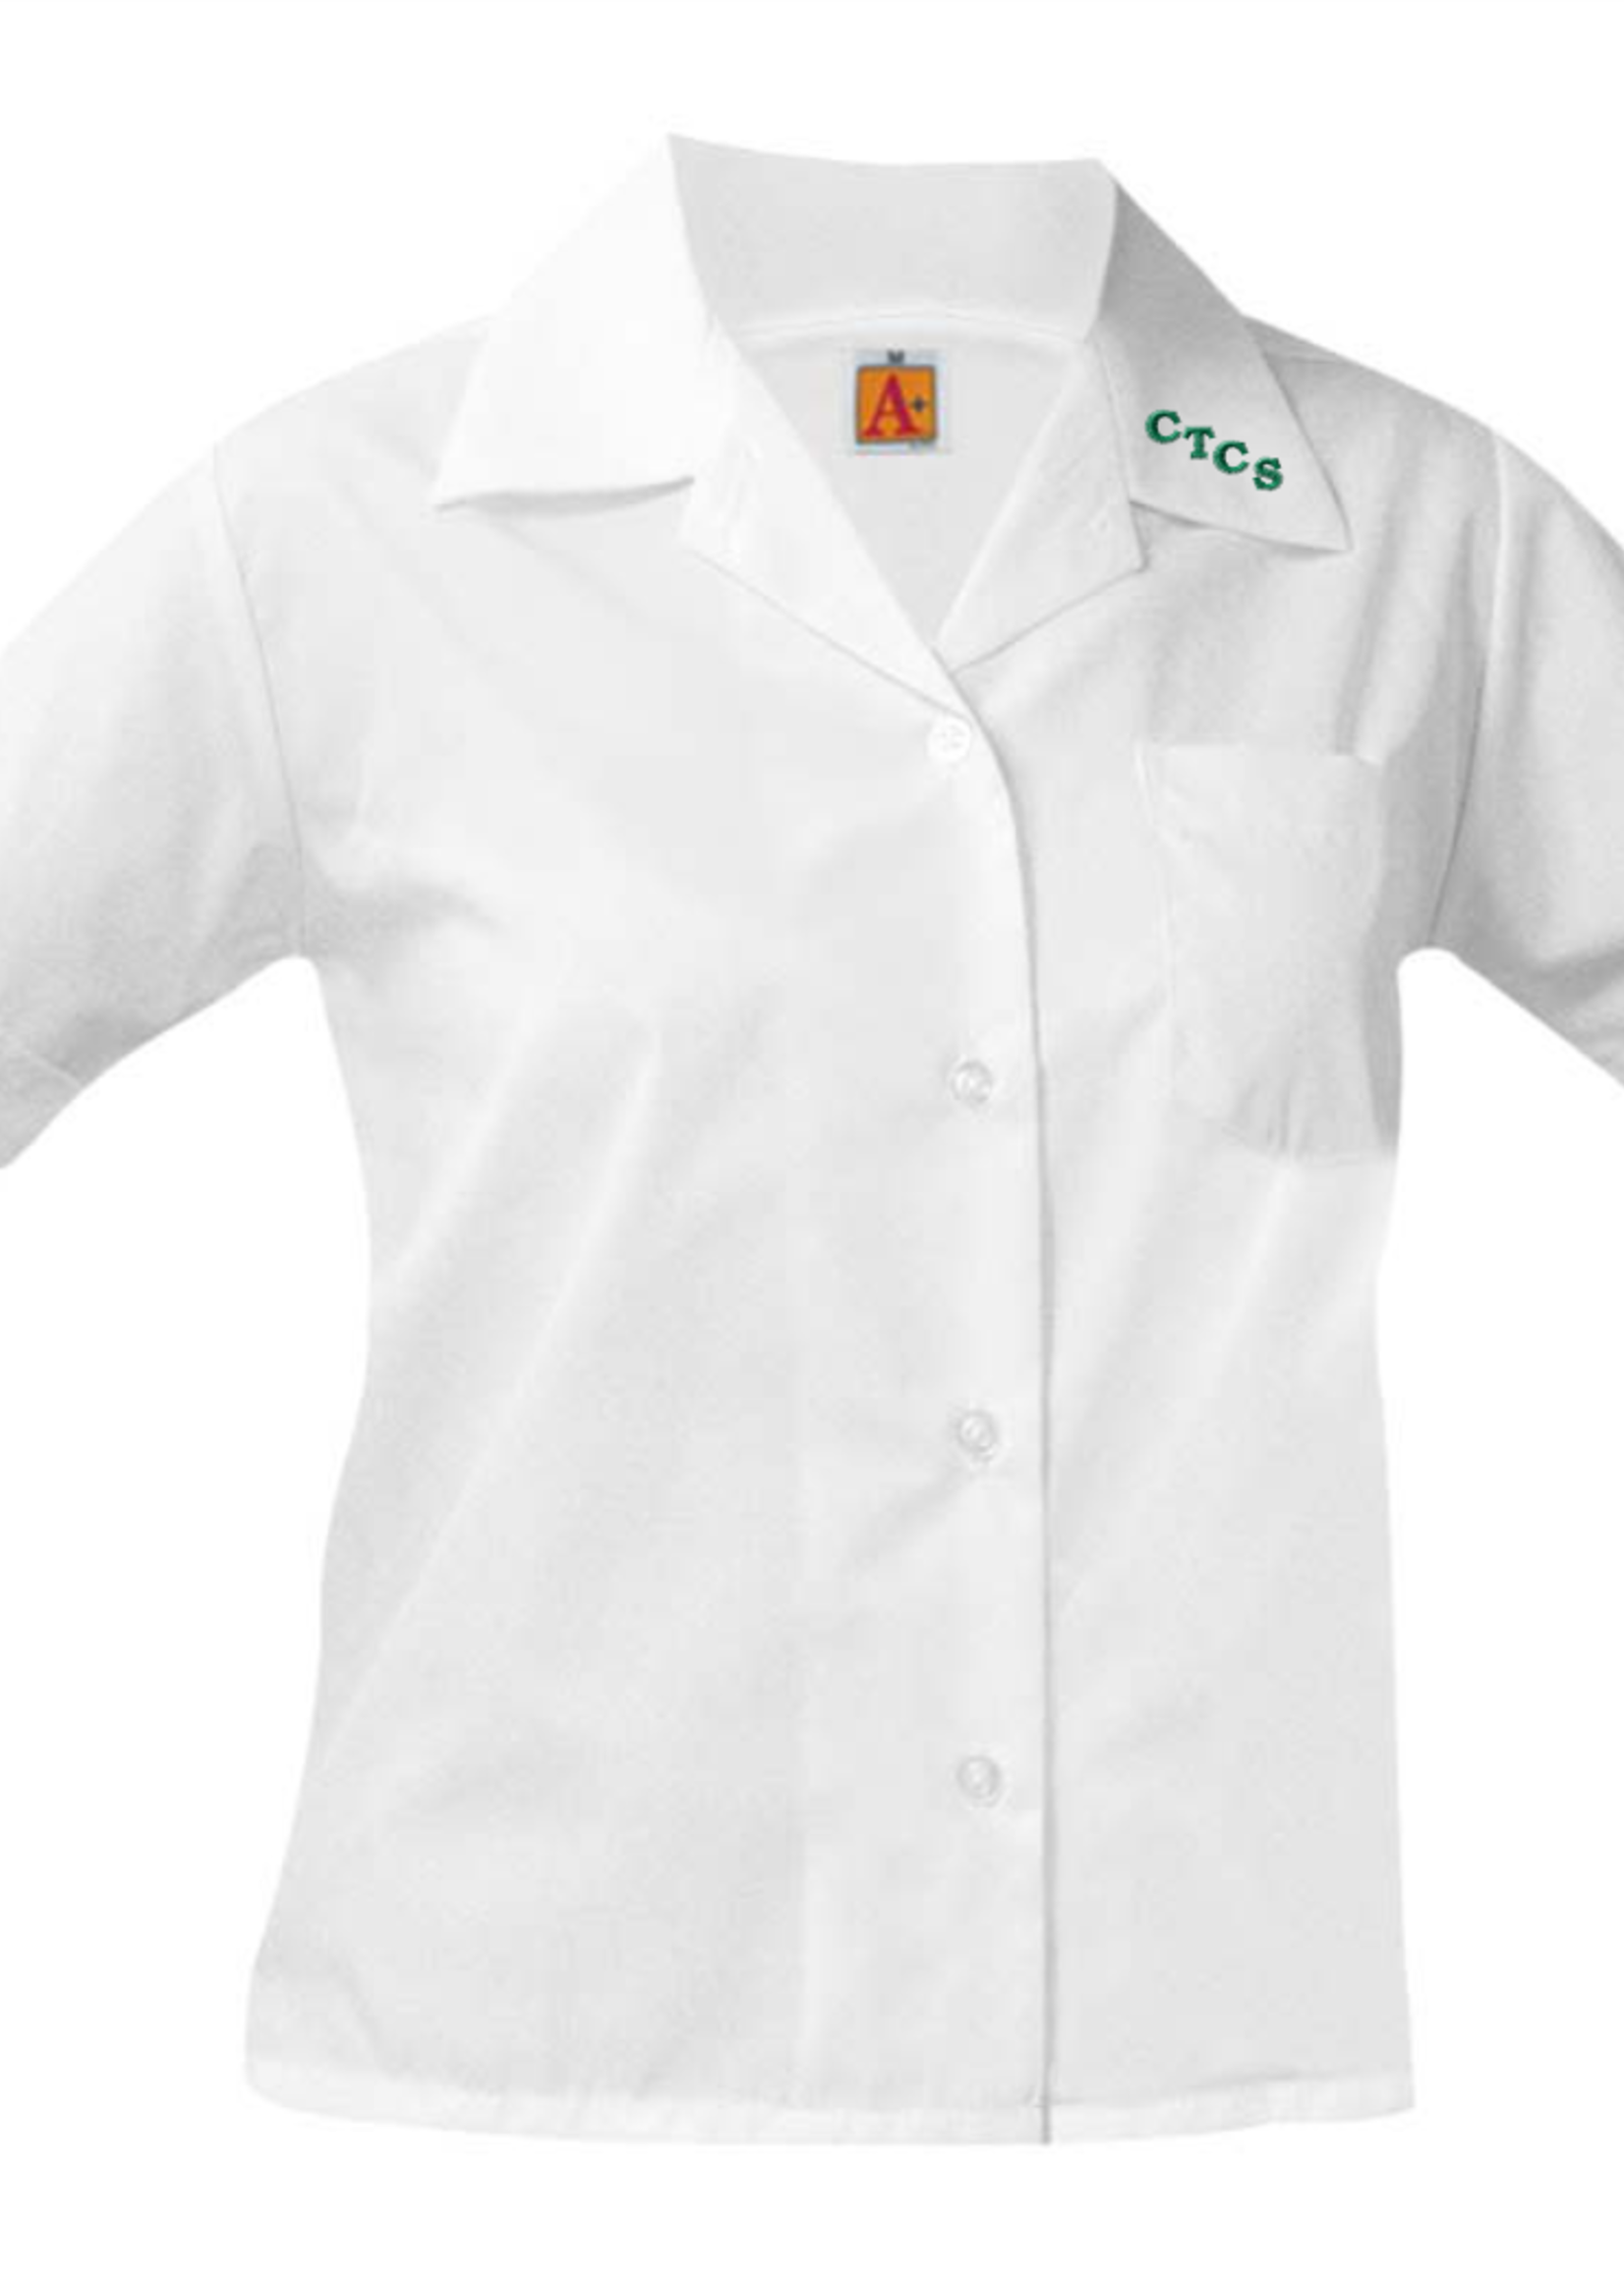 TUS CTCS White Short Sleeve Pointed Collar Blouse